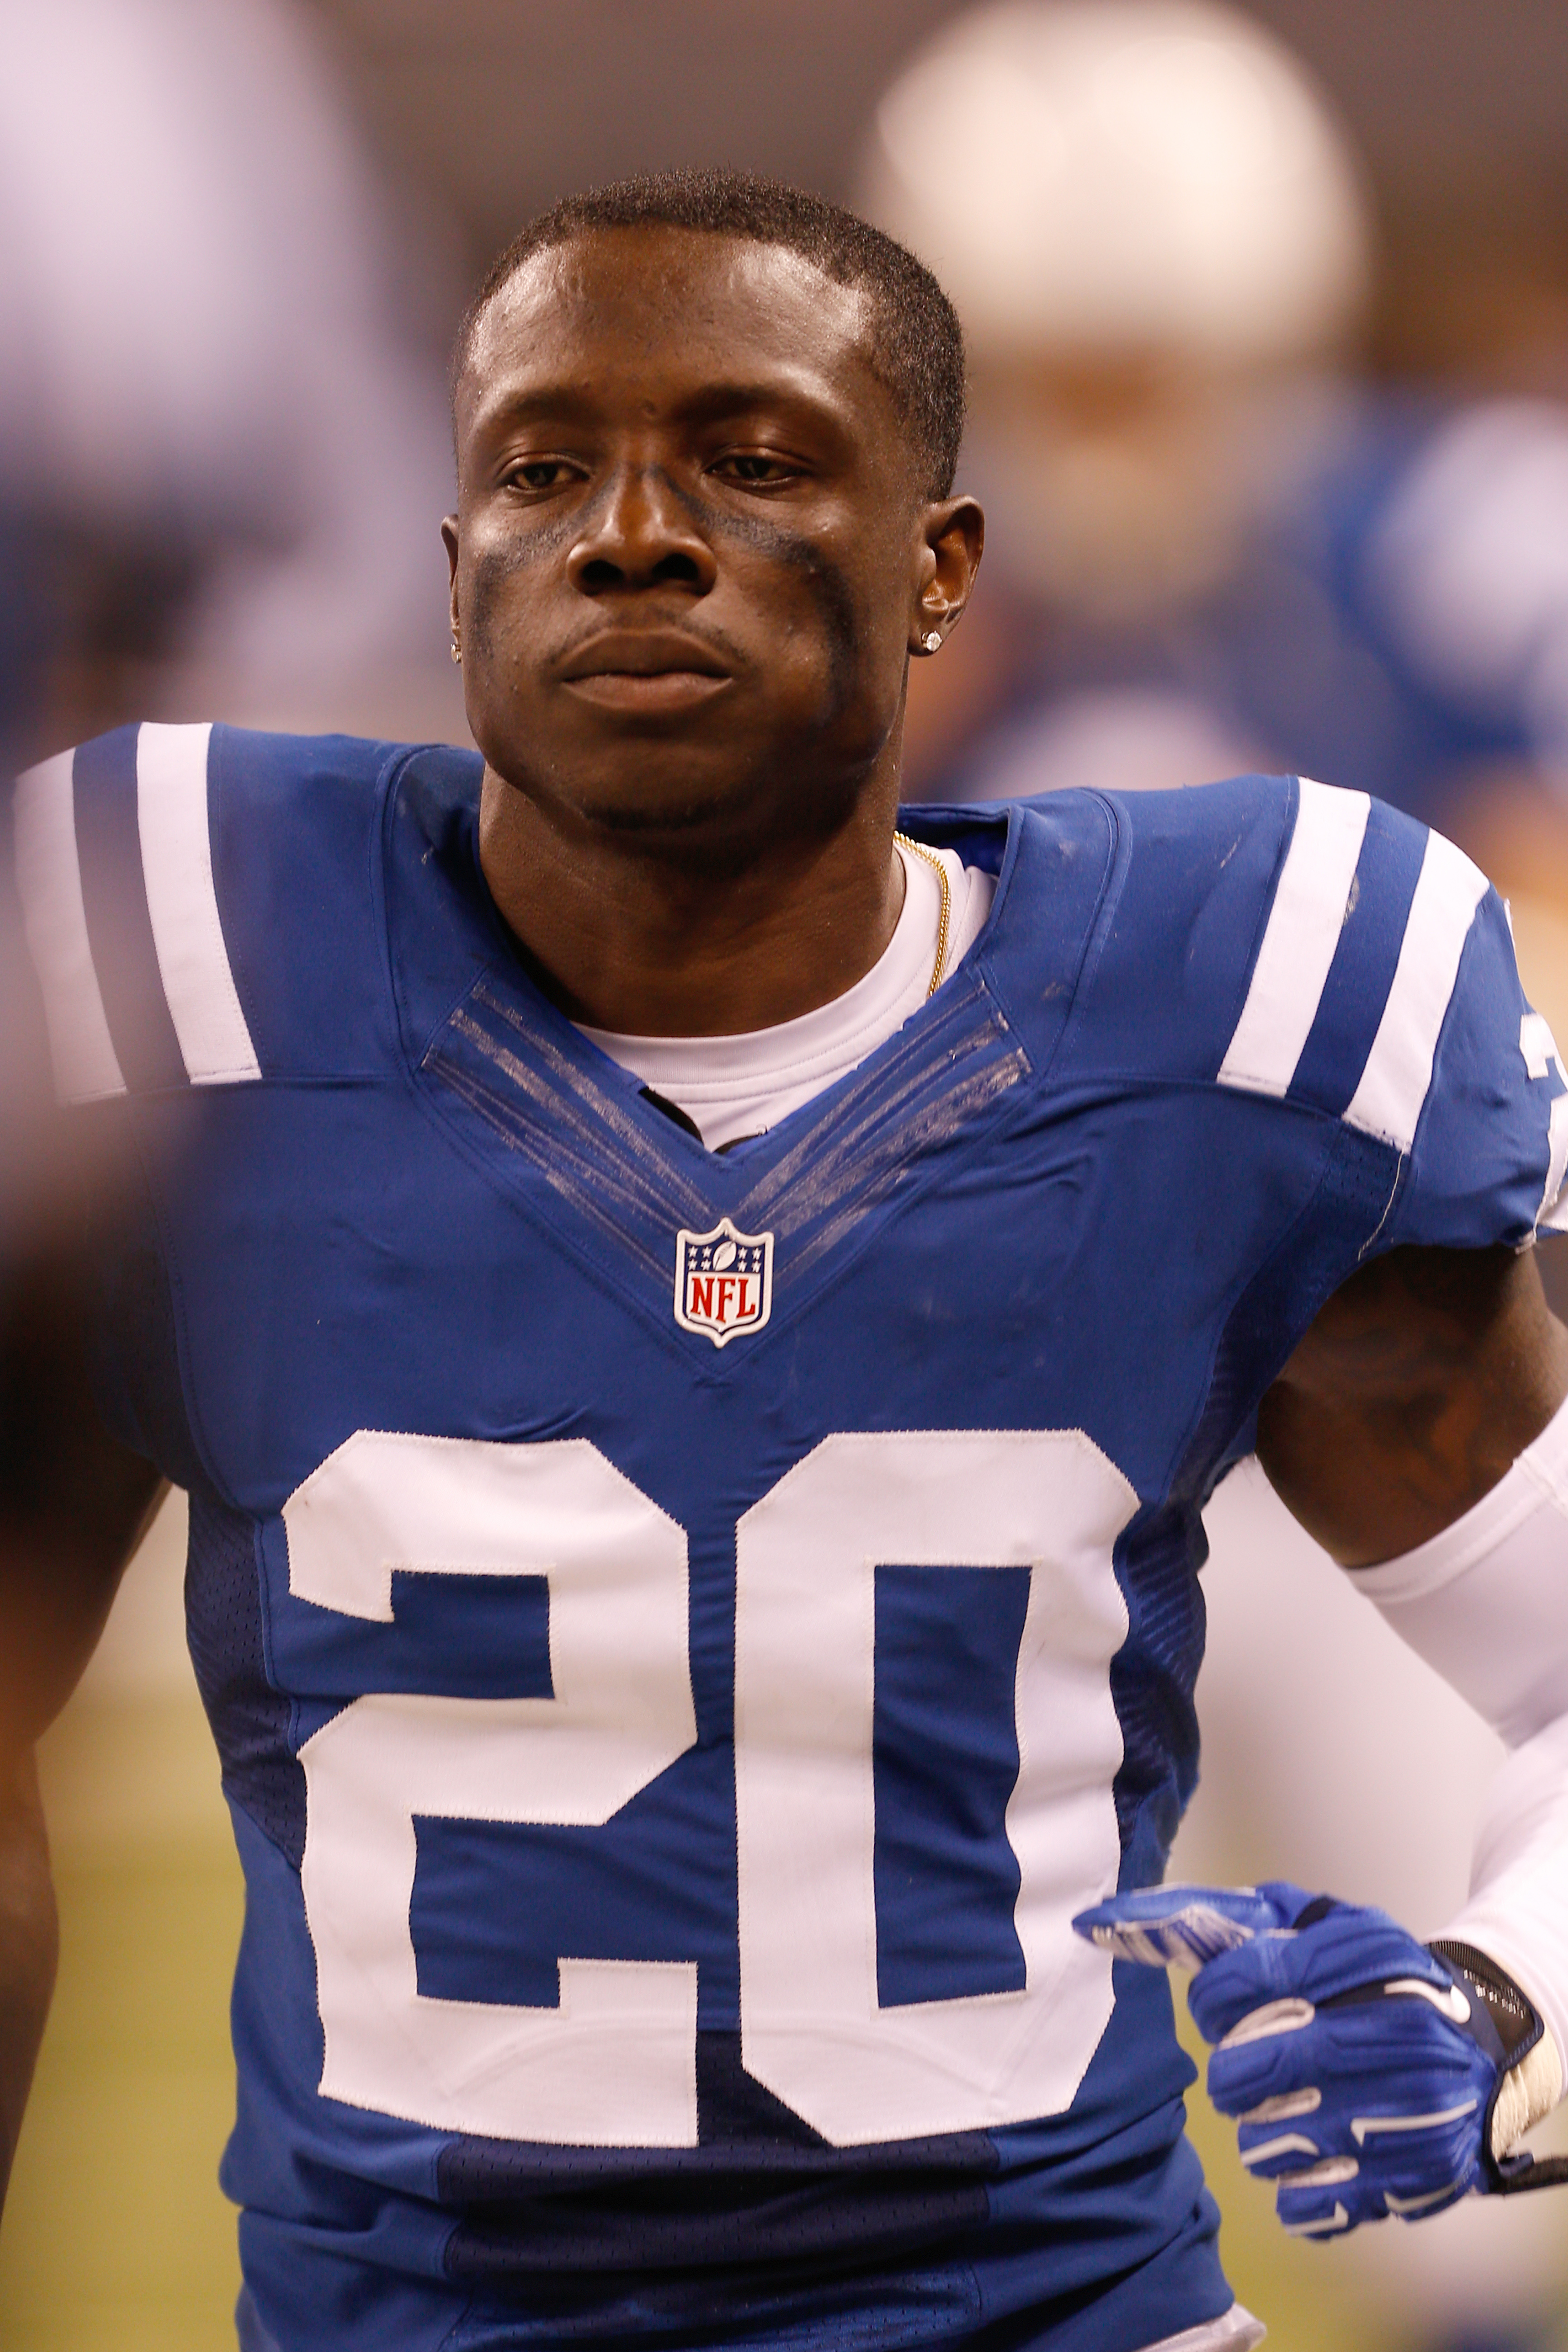 Indianapolis Colts cornerback Darius Butler looks on from the sidelines during the game against the Philadelphia Eagles in Indianapolis on Sept. 15, 2014.